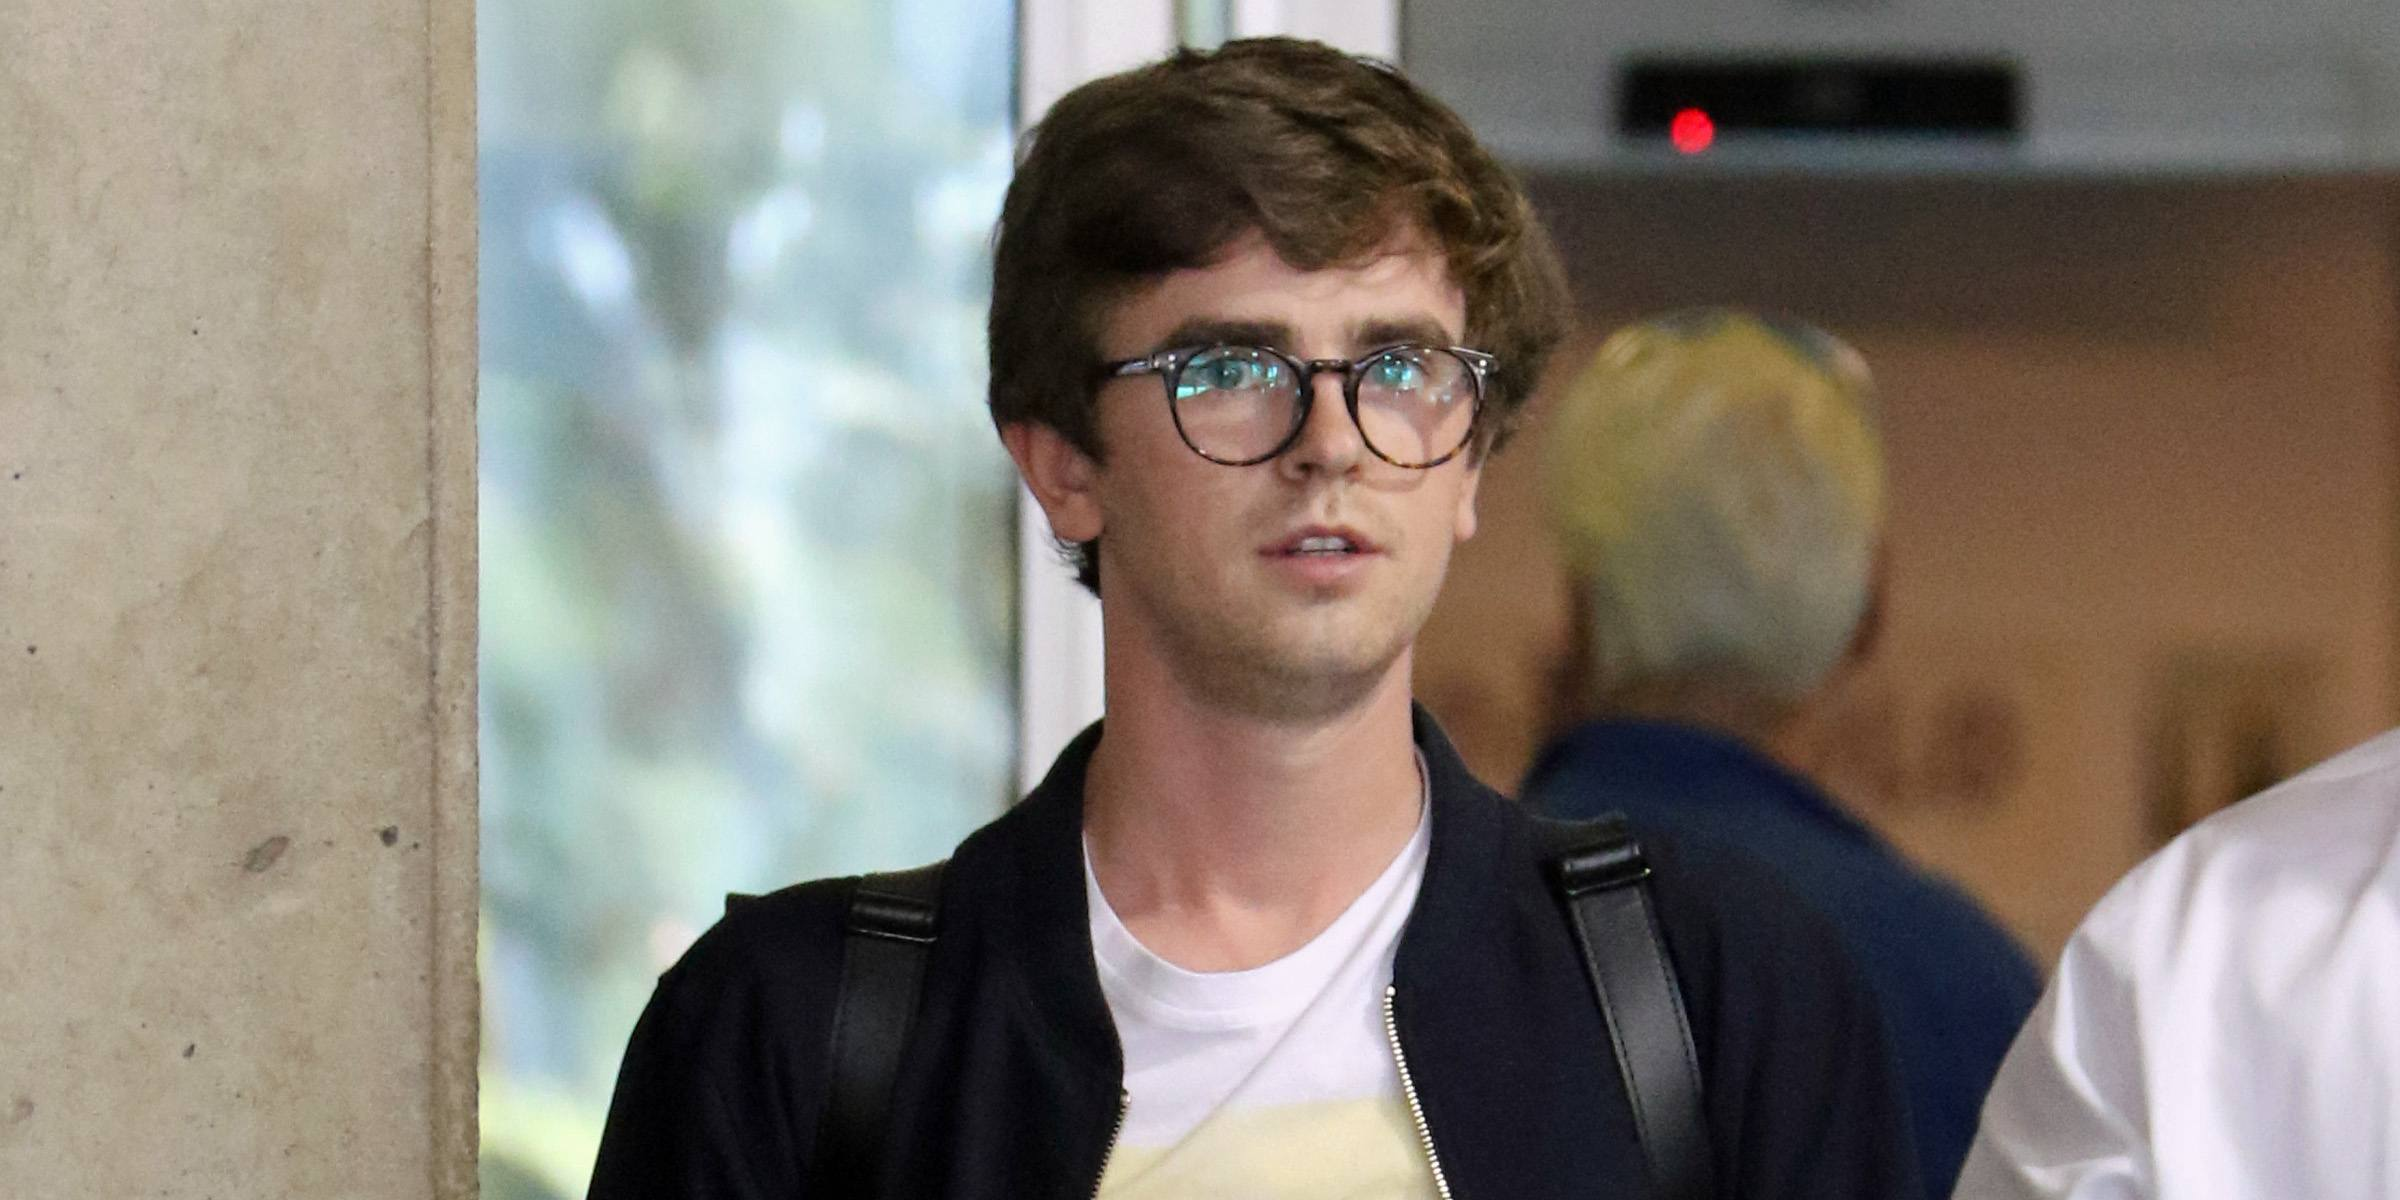 Freddie Highmore arrives in Vancouver to film 'The Good Doctor' (PHOTOS)